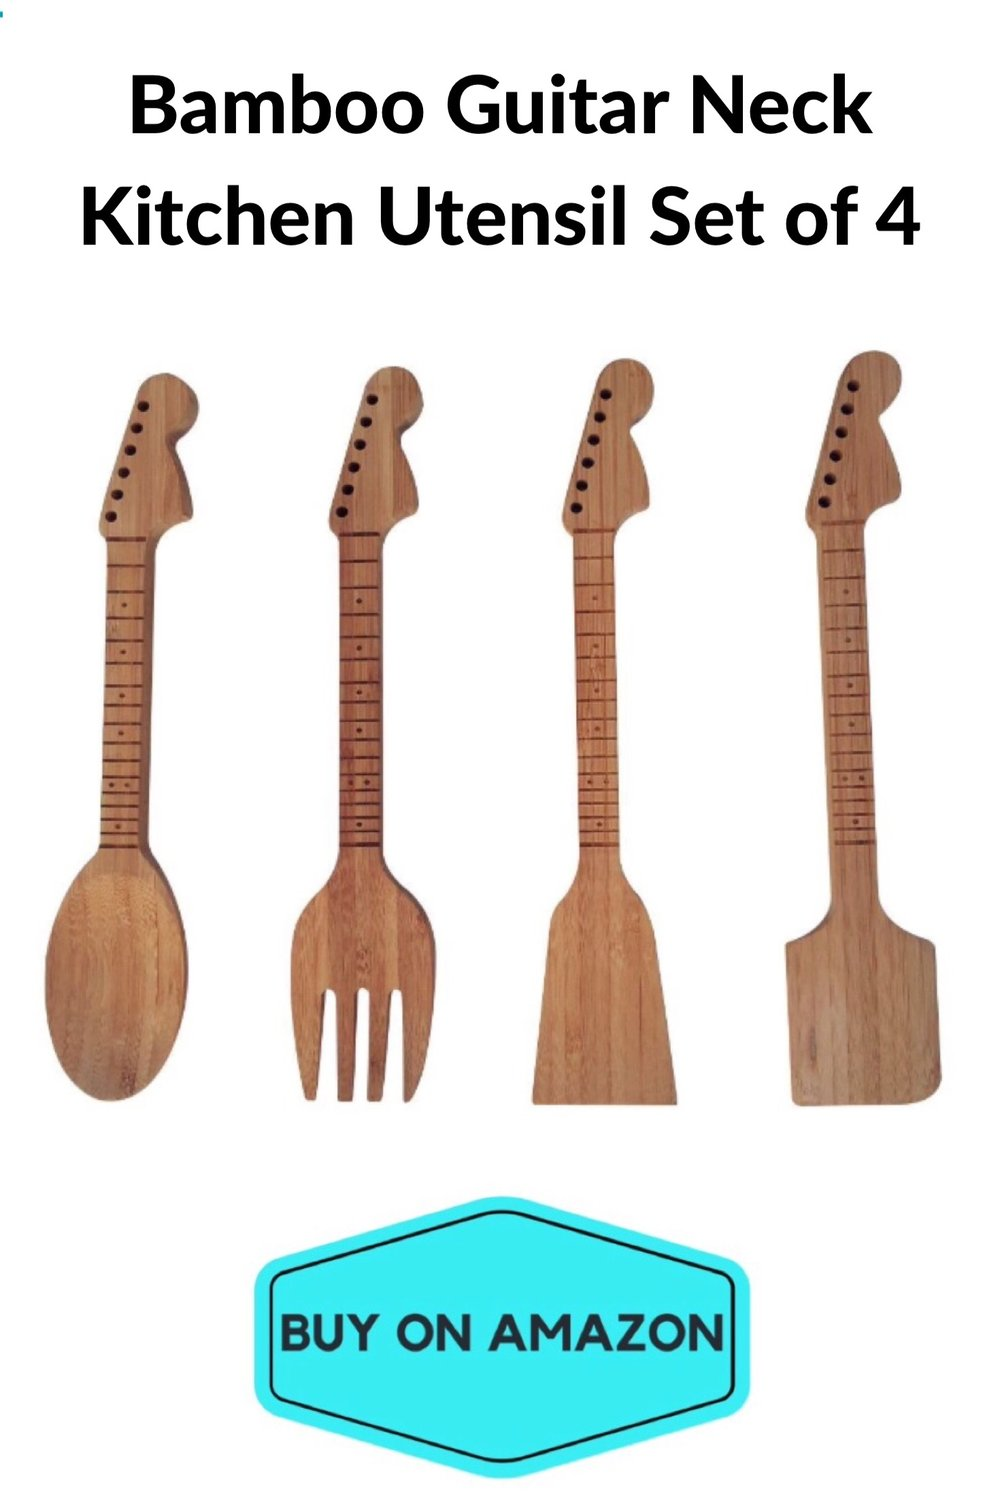 Bamboo Guitar Neck Kitchen Utensil Set of 4